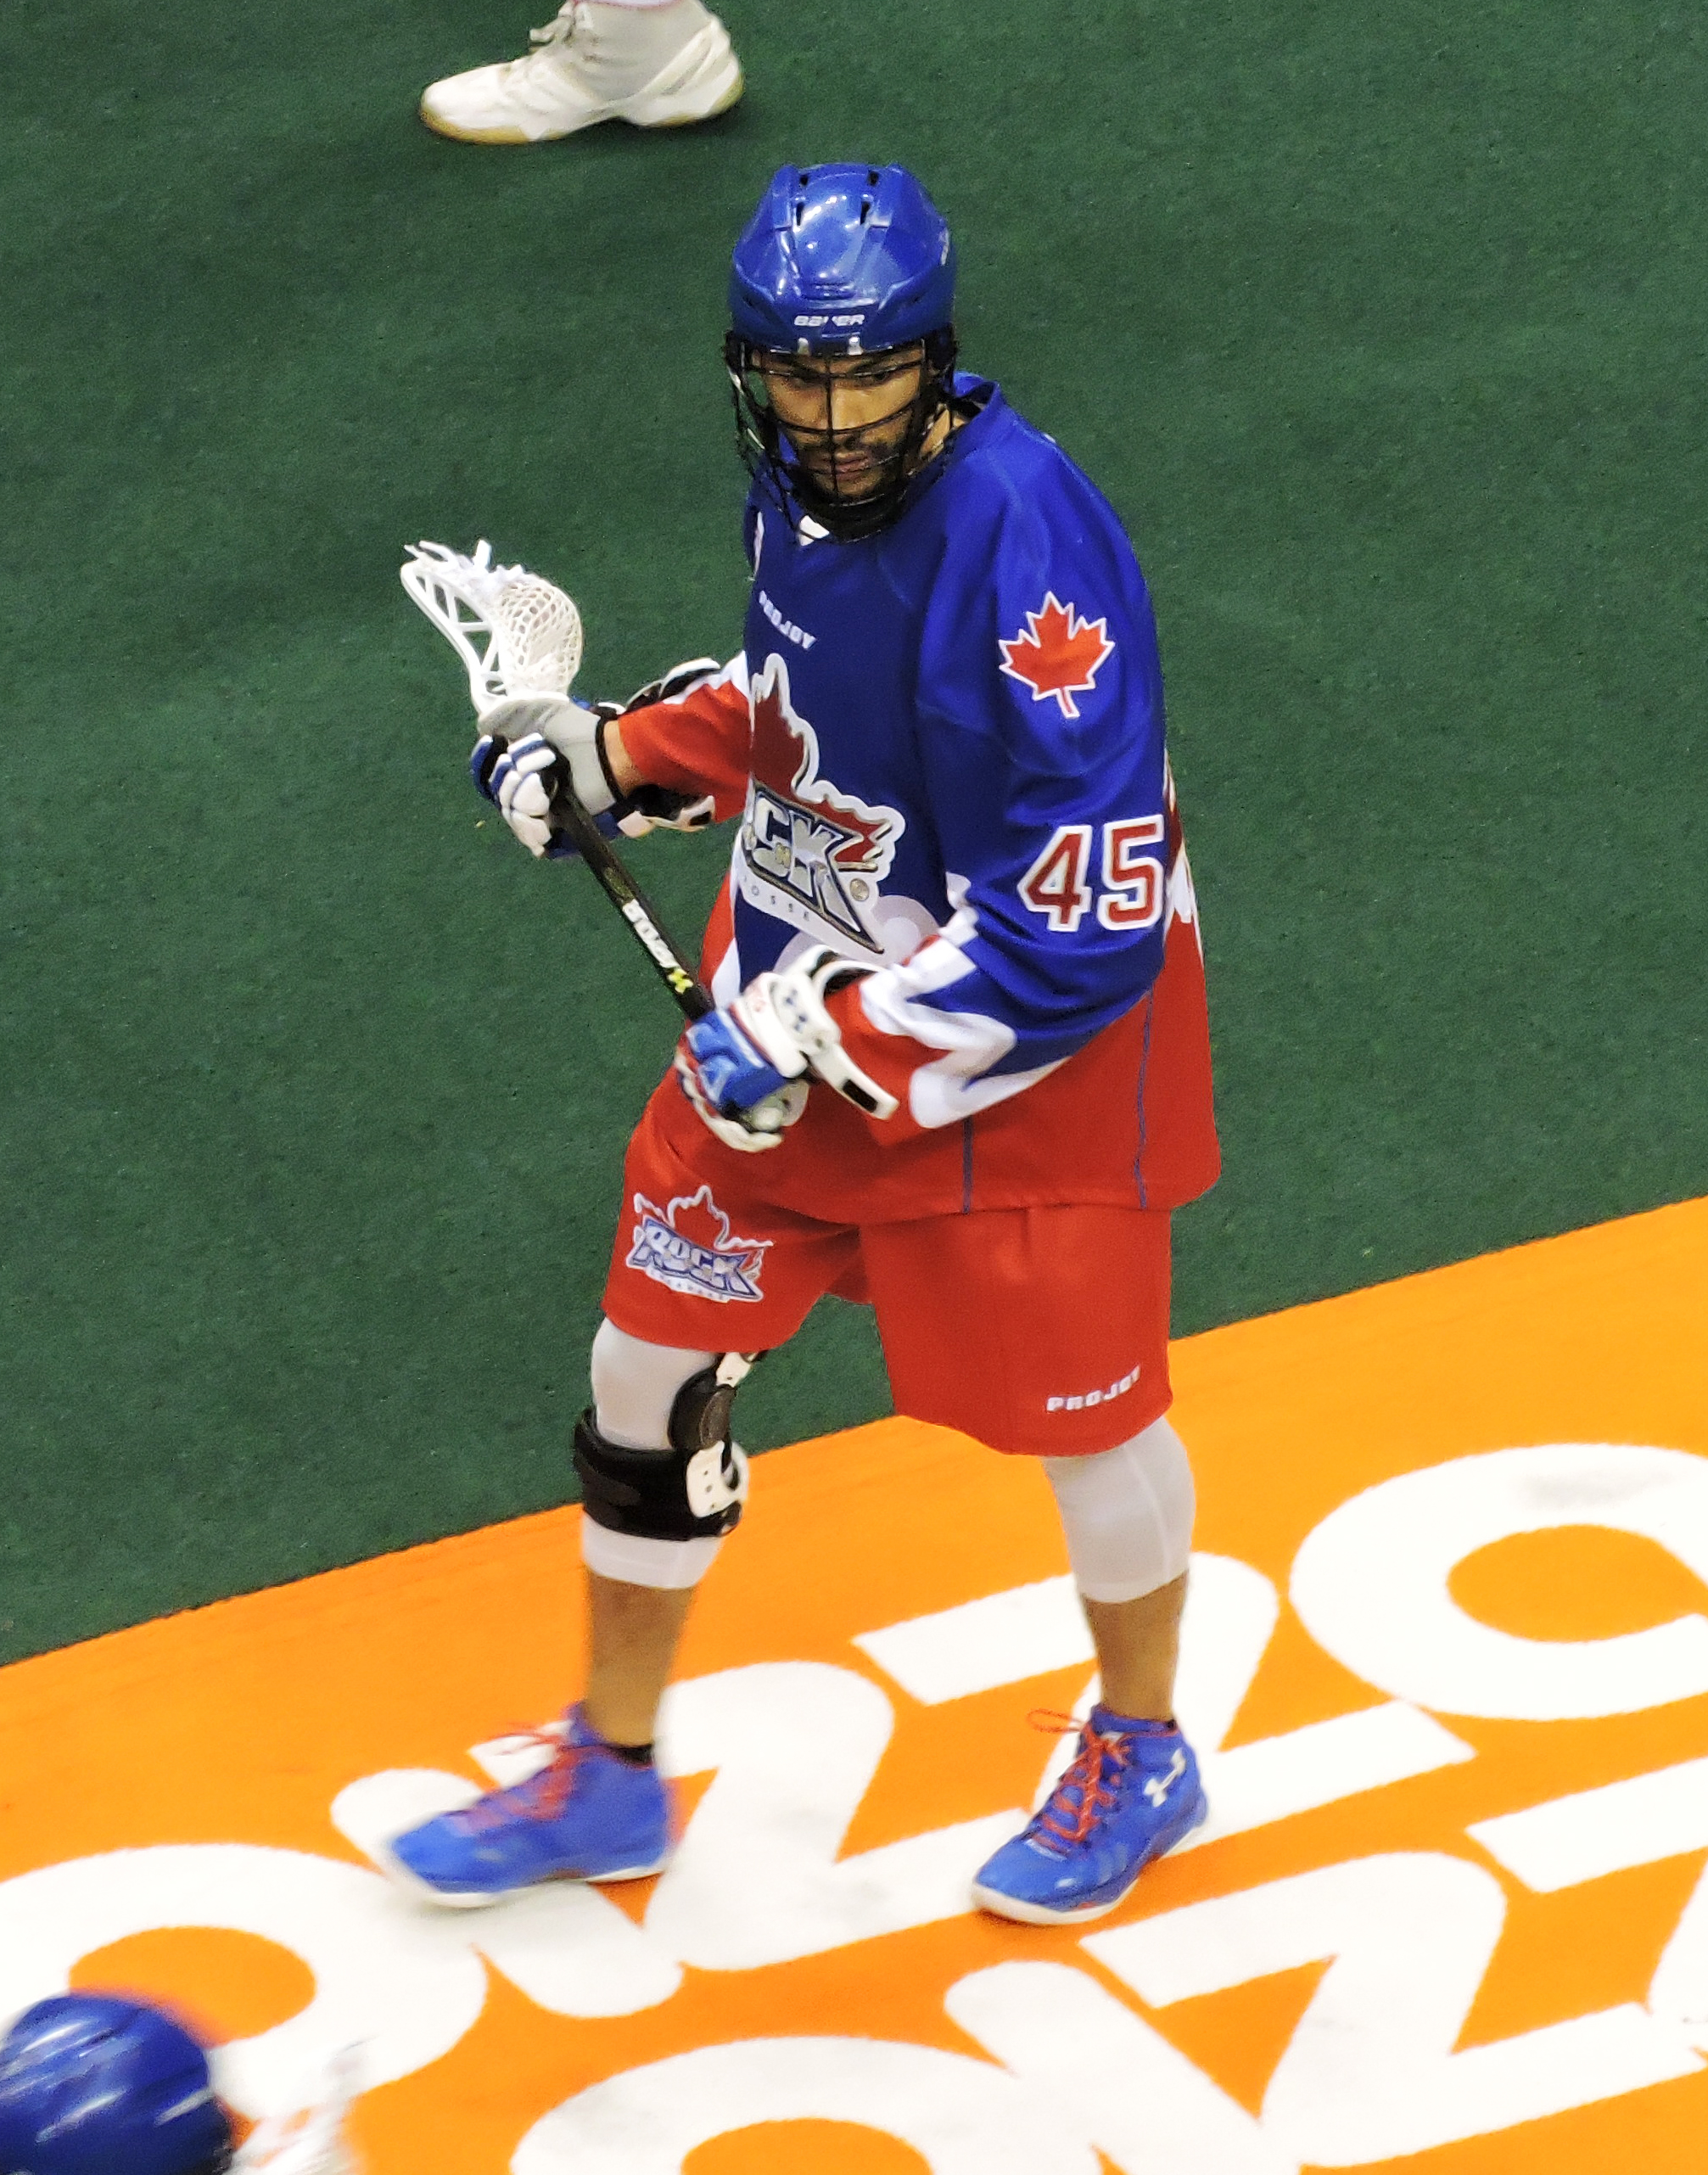 Damon Edwards had two goals for the Rock in their east division semi-final against the New England Black Wolves on May 6, 2017. (Photo credit: Anna Taylor)